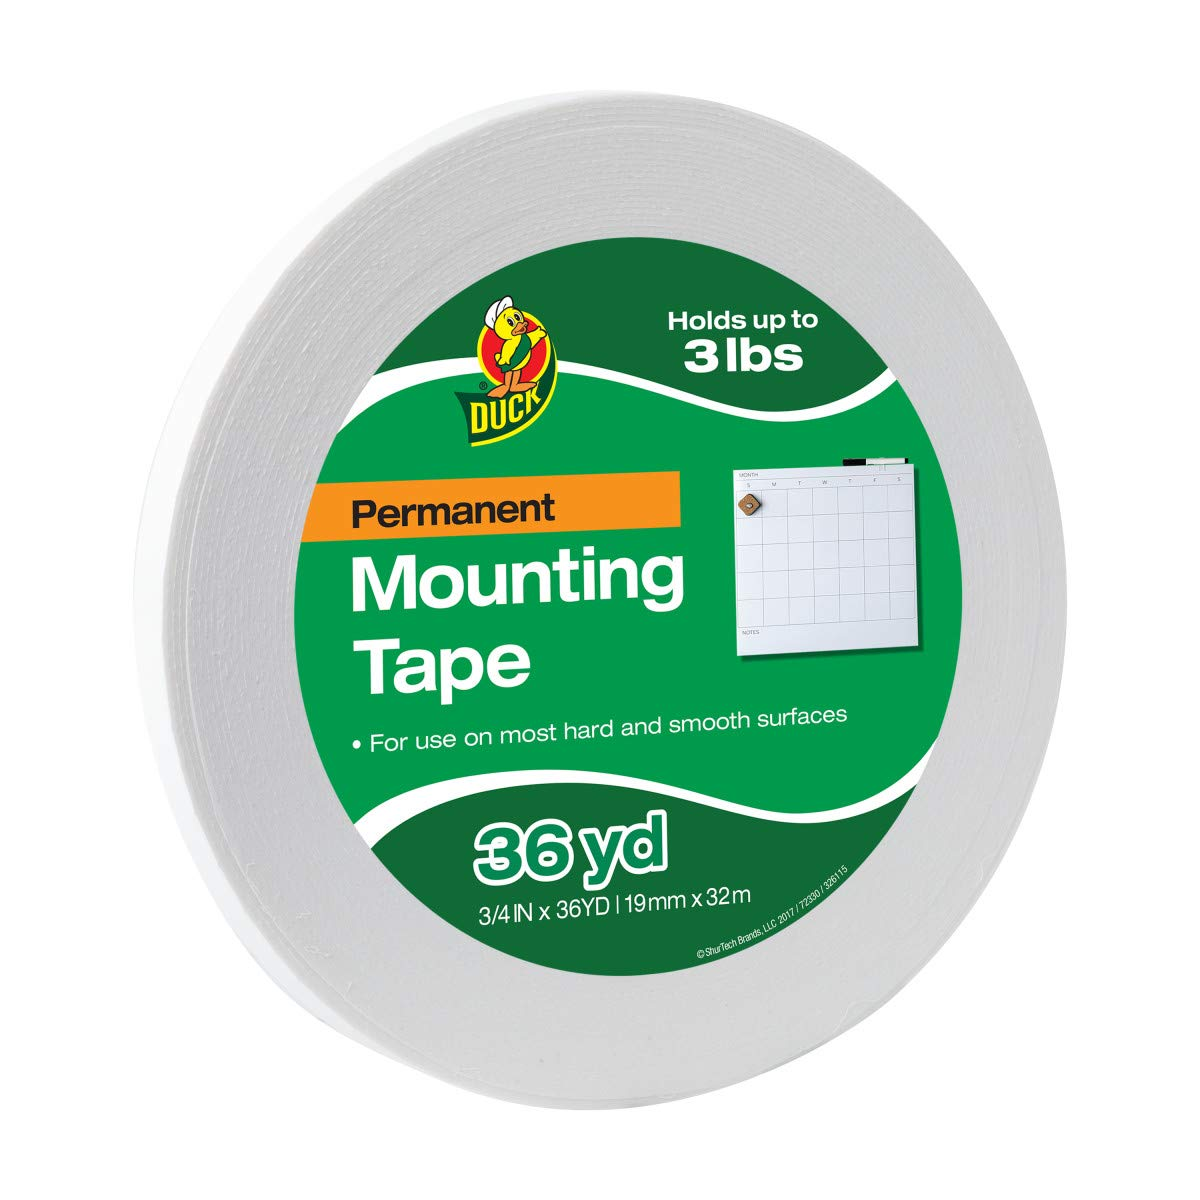 Duck Brand Permanent Foam Mounting Tape, Double-Sided, 0.75-Inch x 36 Yards, Single Roll, White (1289275) by Duck